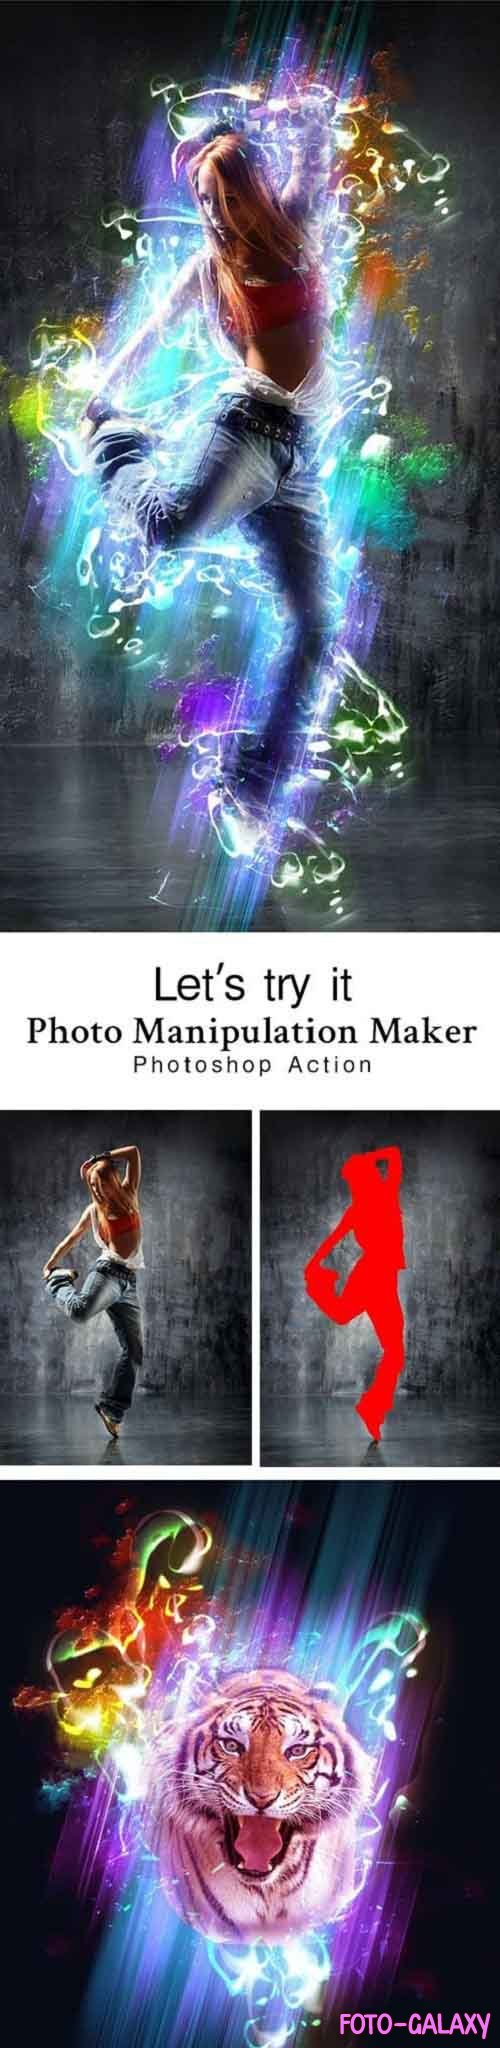 GraphicRiver - Photo Manipulation Maker Photoshop Action 28807039